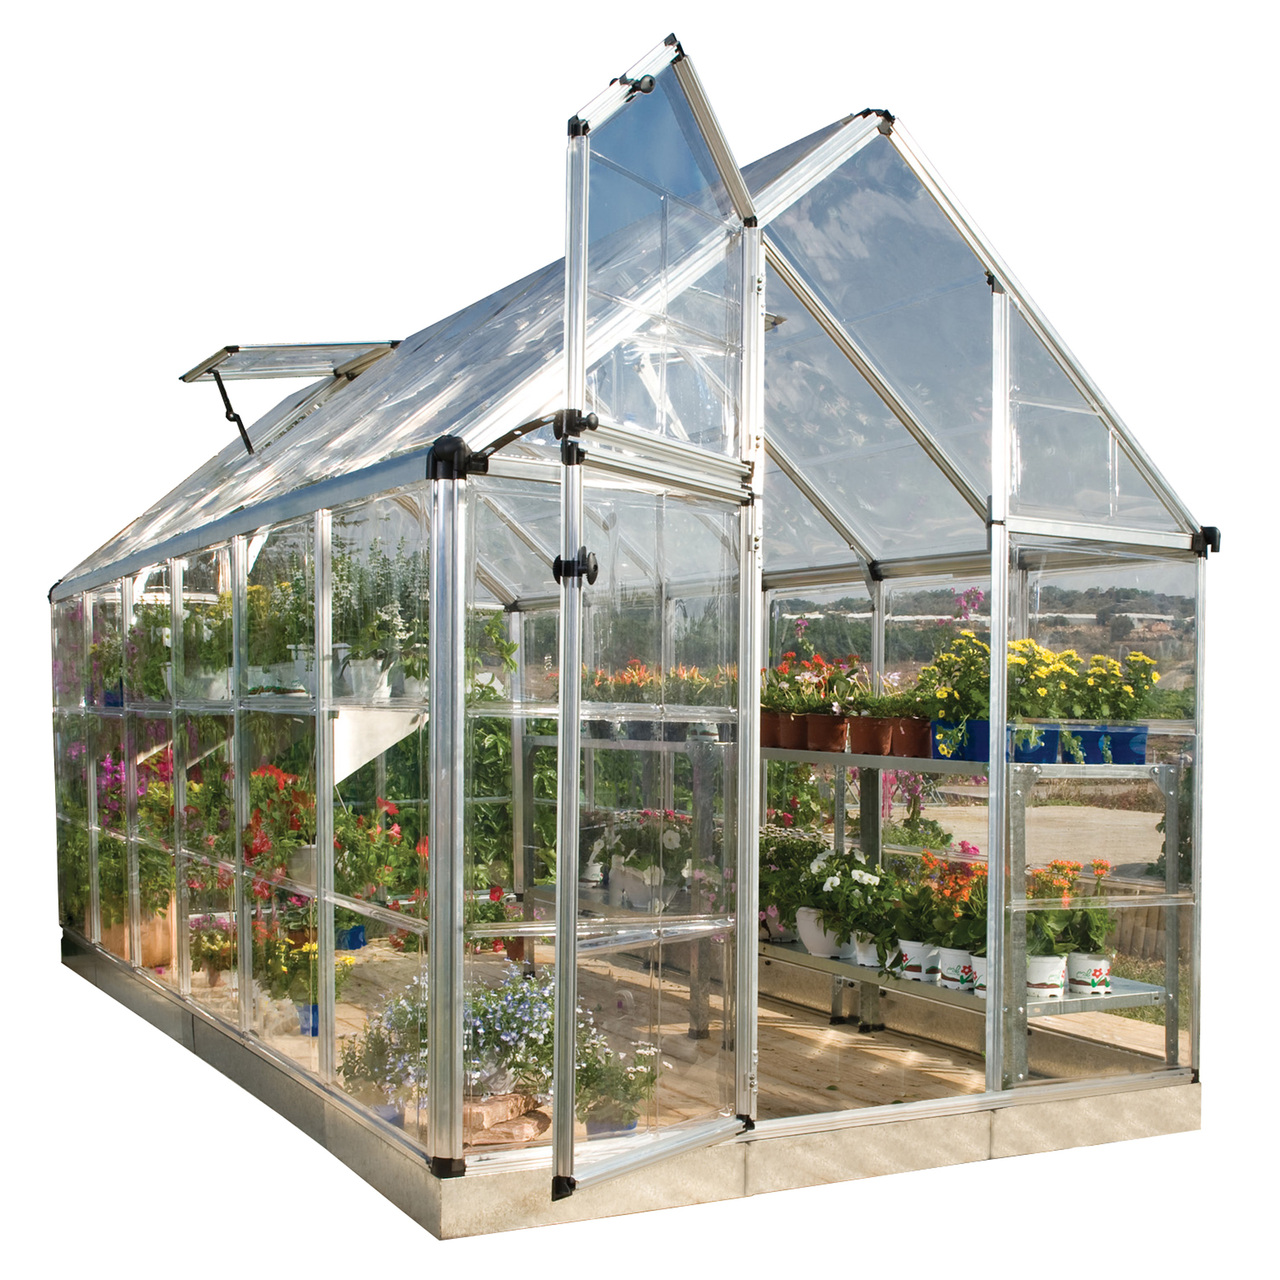 Palram Snap & Grow 6' x 12' Hobby Greenhouse, Silver